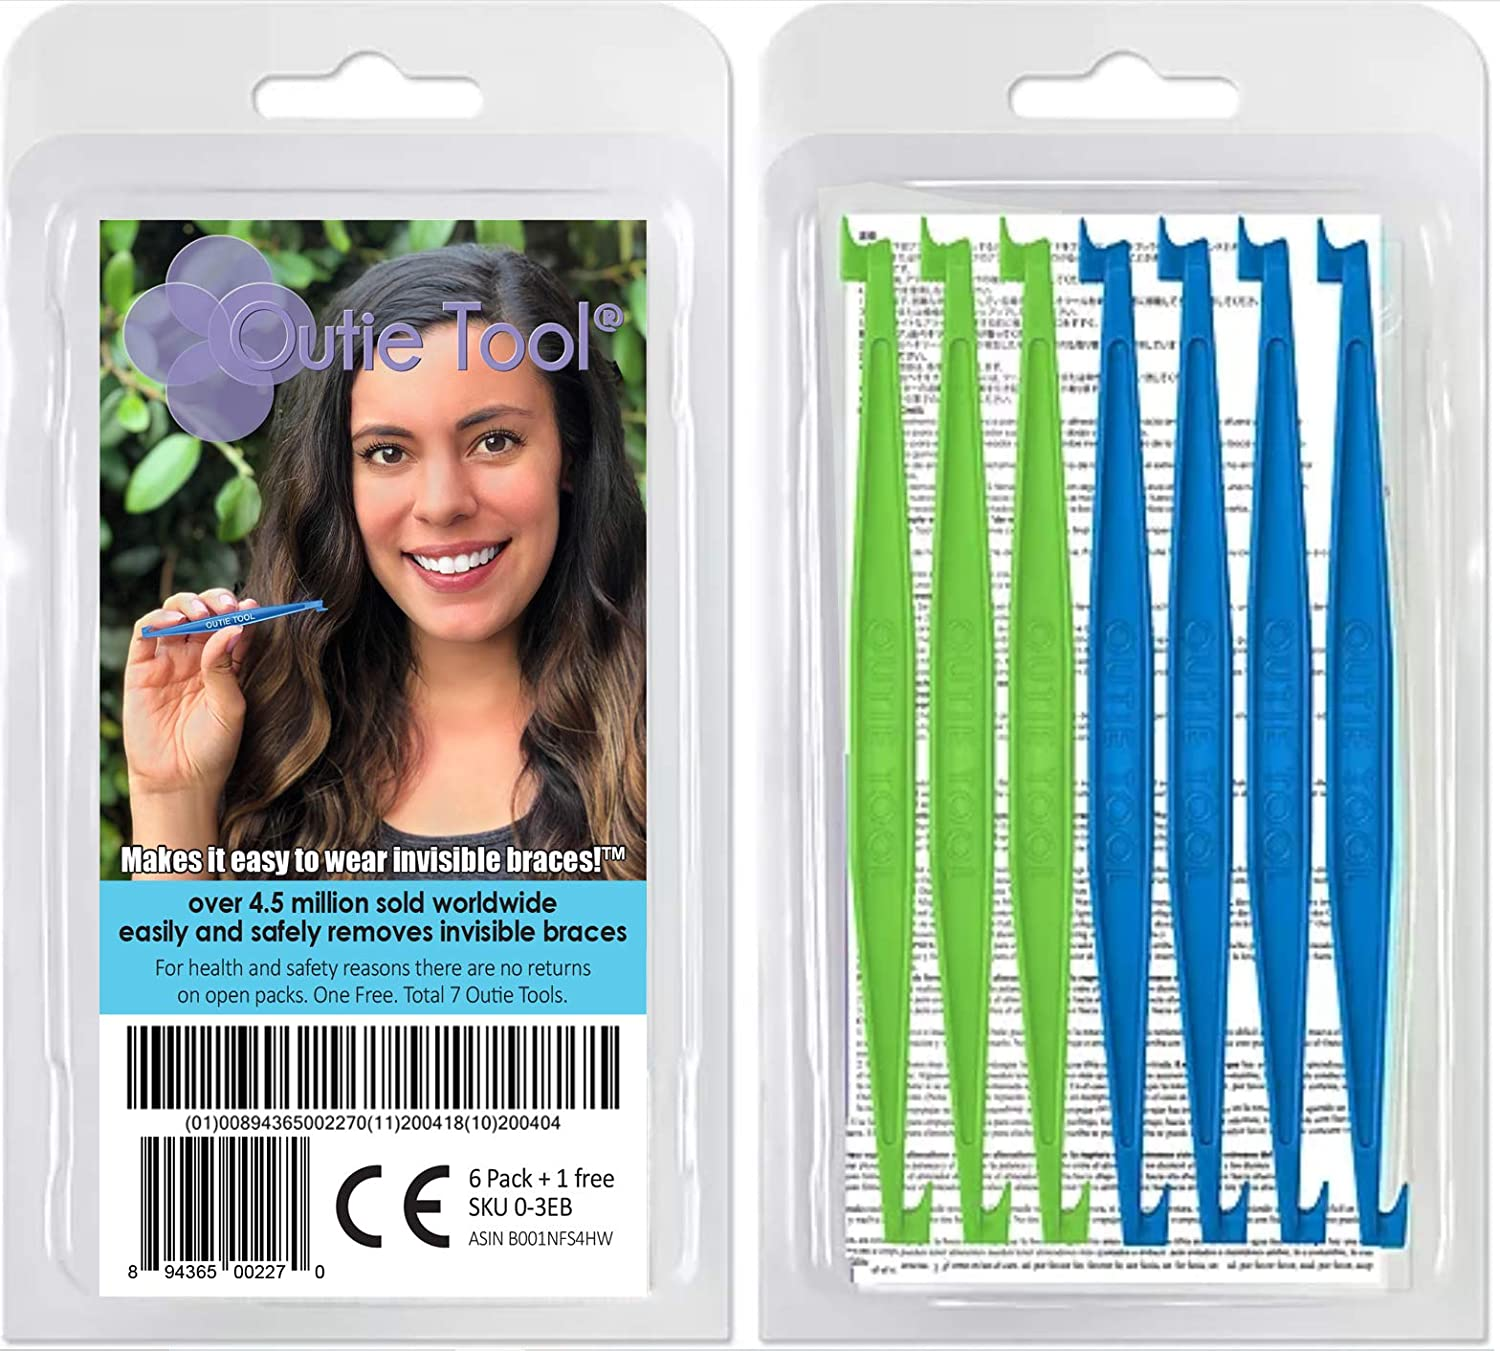 Outie Tool | Clear Aligner Invisible Braces Removal Tool | Patented Design | 1 Pack Contains 7 Tools : Oral Hygiene Products : Beauty